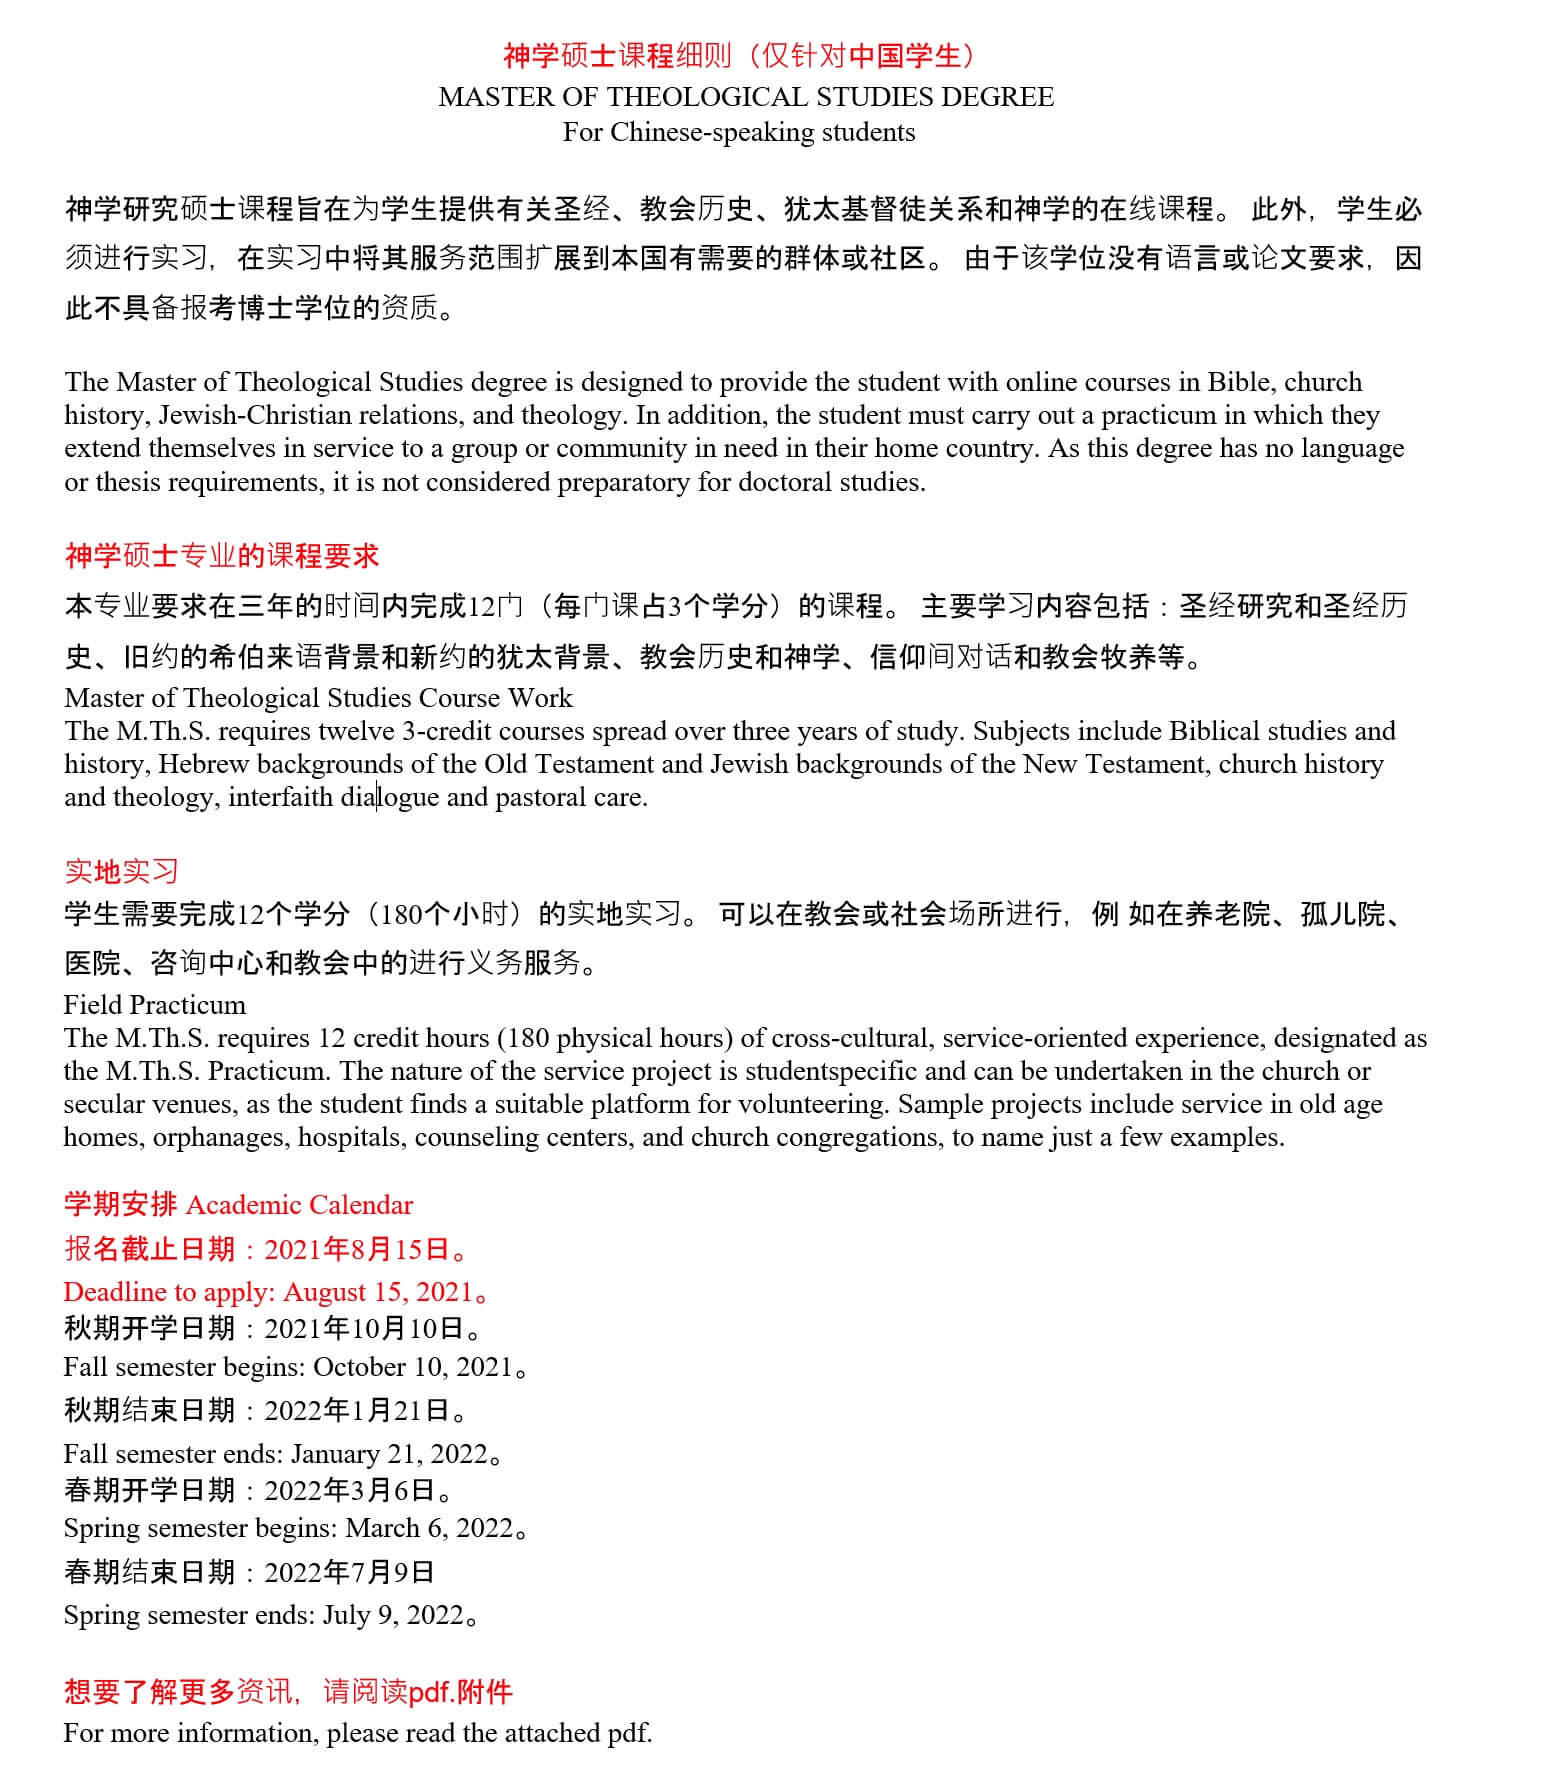 Program Details in Chinese